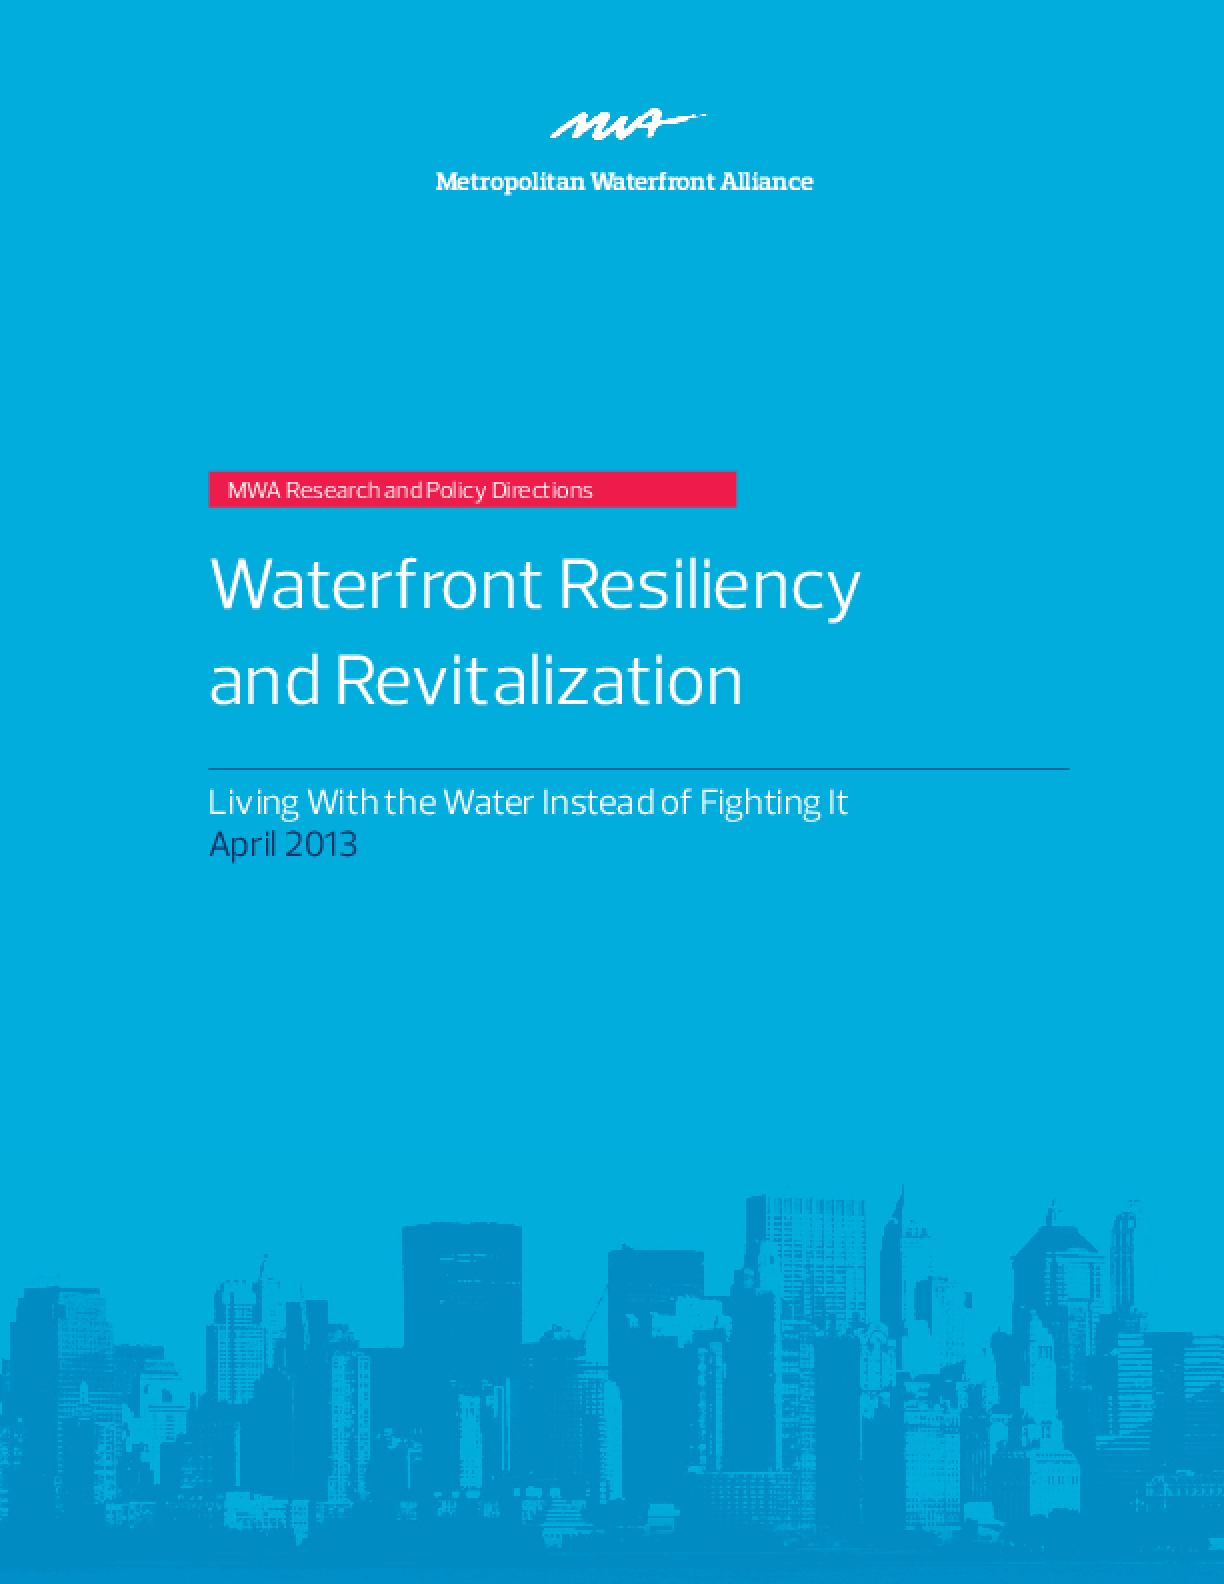 Waterfront Resiliency and Revitalization: Living With the Water Instead of Fighting It